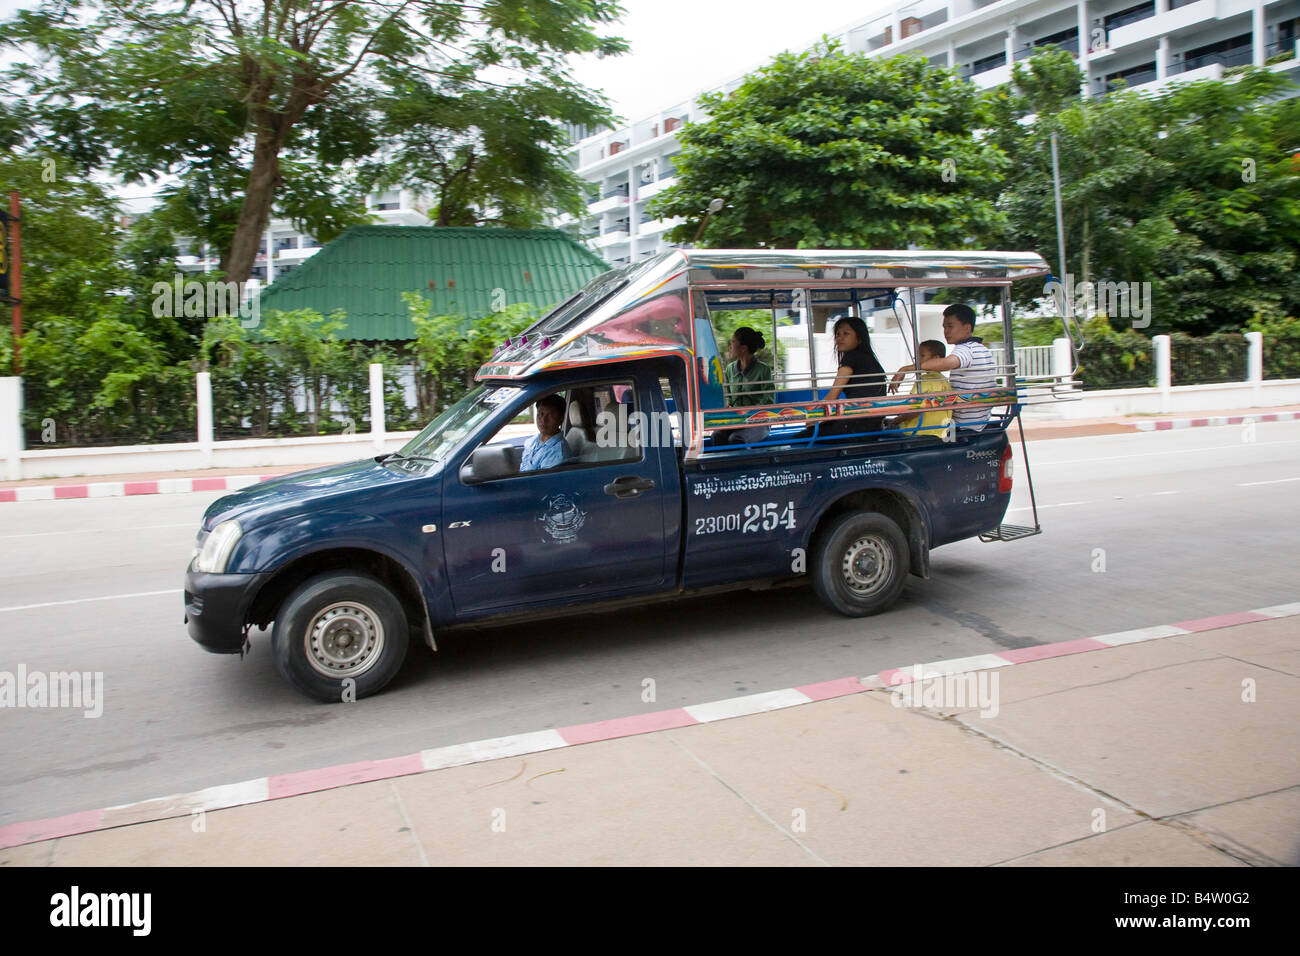 "Traditional ""Tuktuk"" taxis, Shared Mobile open-air, passenger vehicle, Baht Bus, Songthaew, Tuk-Tuk, or Taxi,  Advertising - Stock Image"